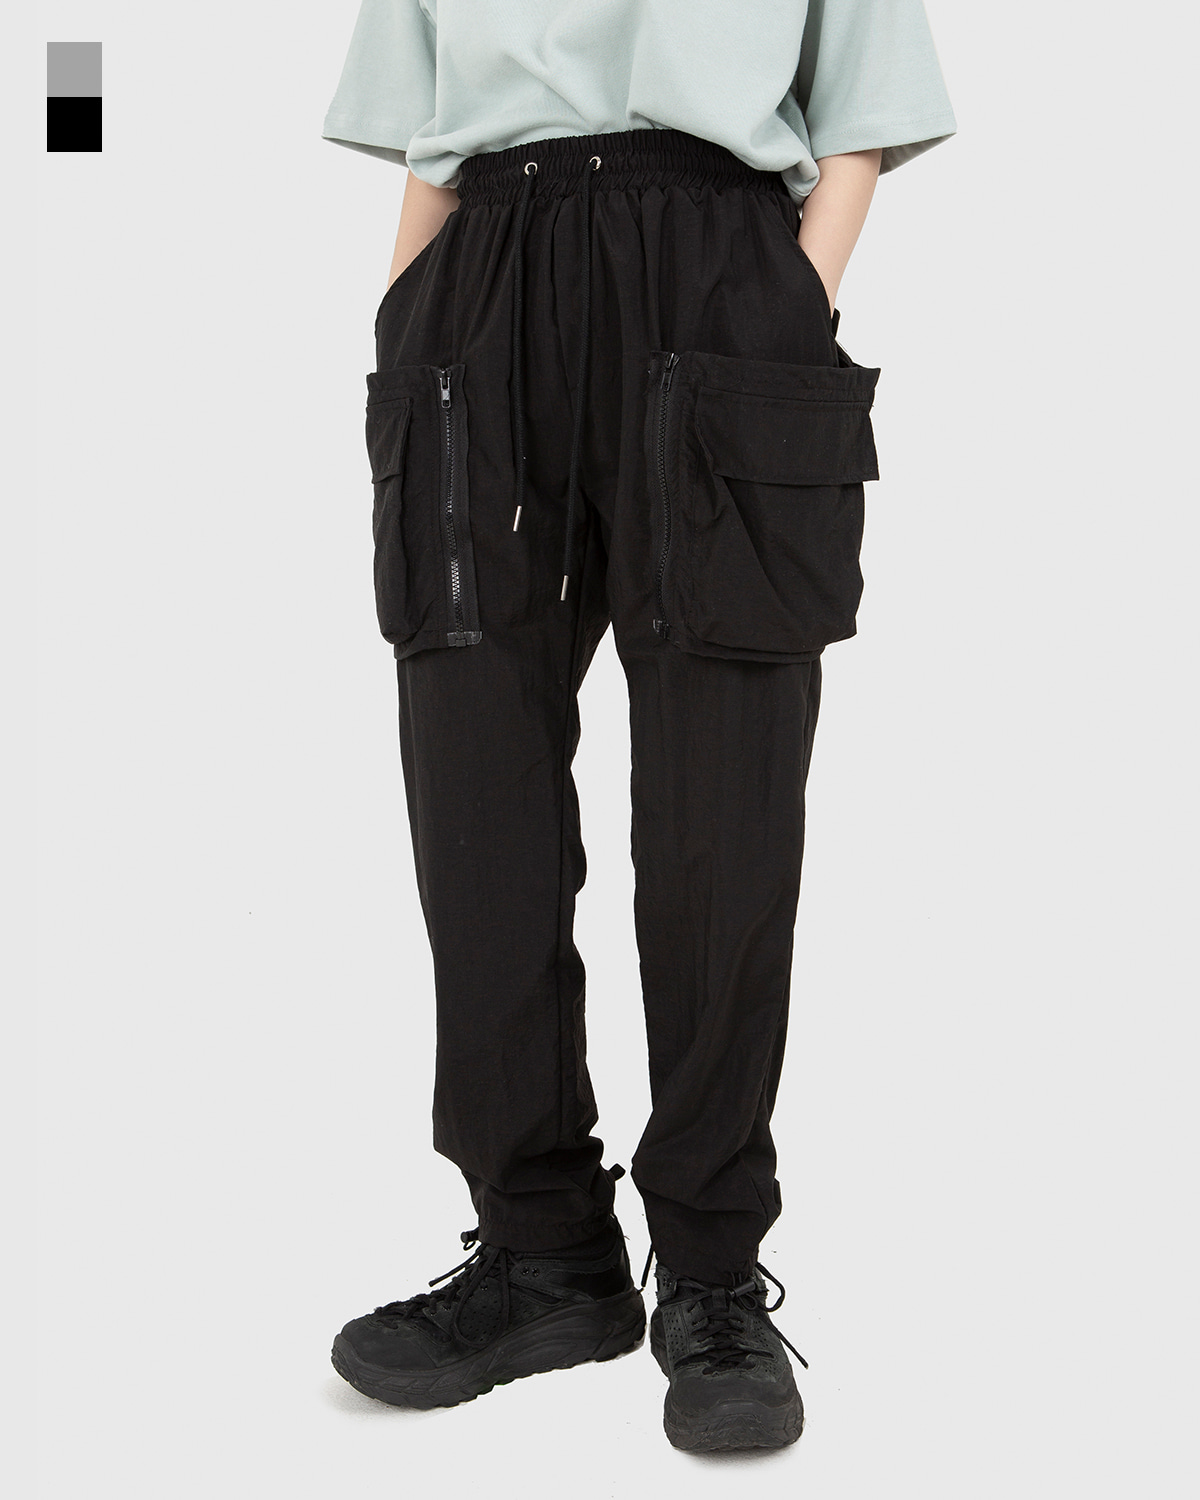 raucohouse-LAYERED DETACHABLE NYLON PANTS - RAUCO HOUSE♡韓國男裝褲子